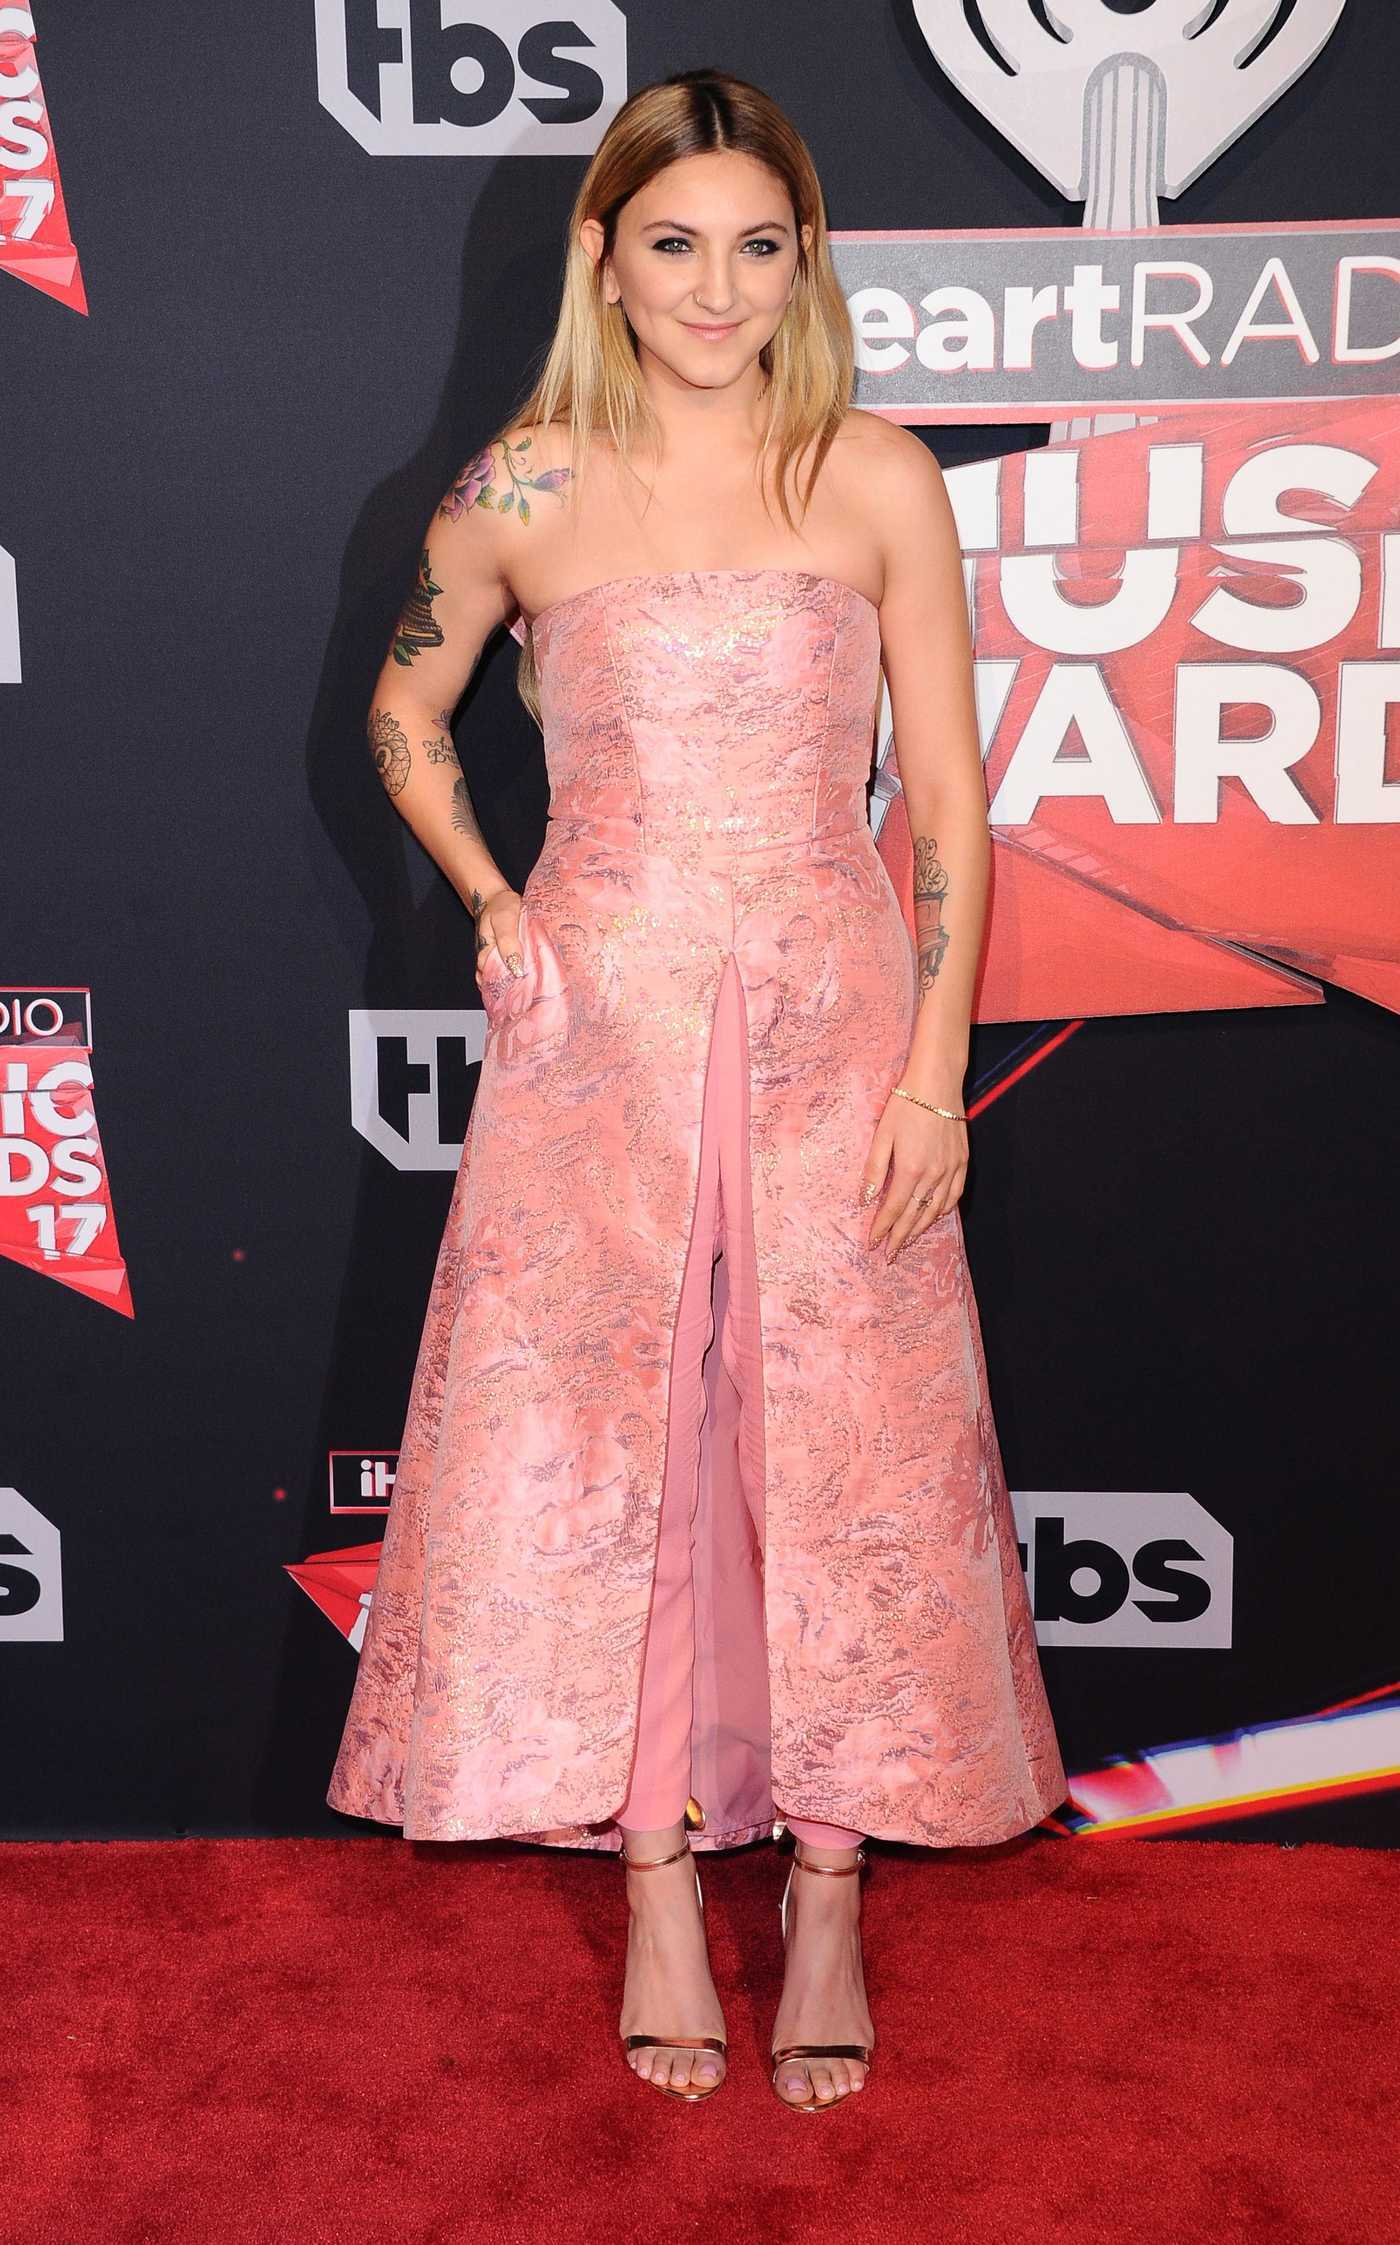 Julia Michaels at the iHeartRadio Music Awards in Los Angeles 03/05/2017